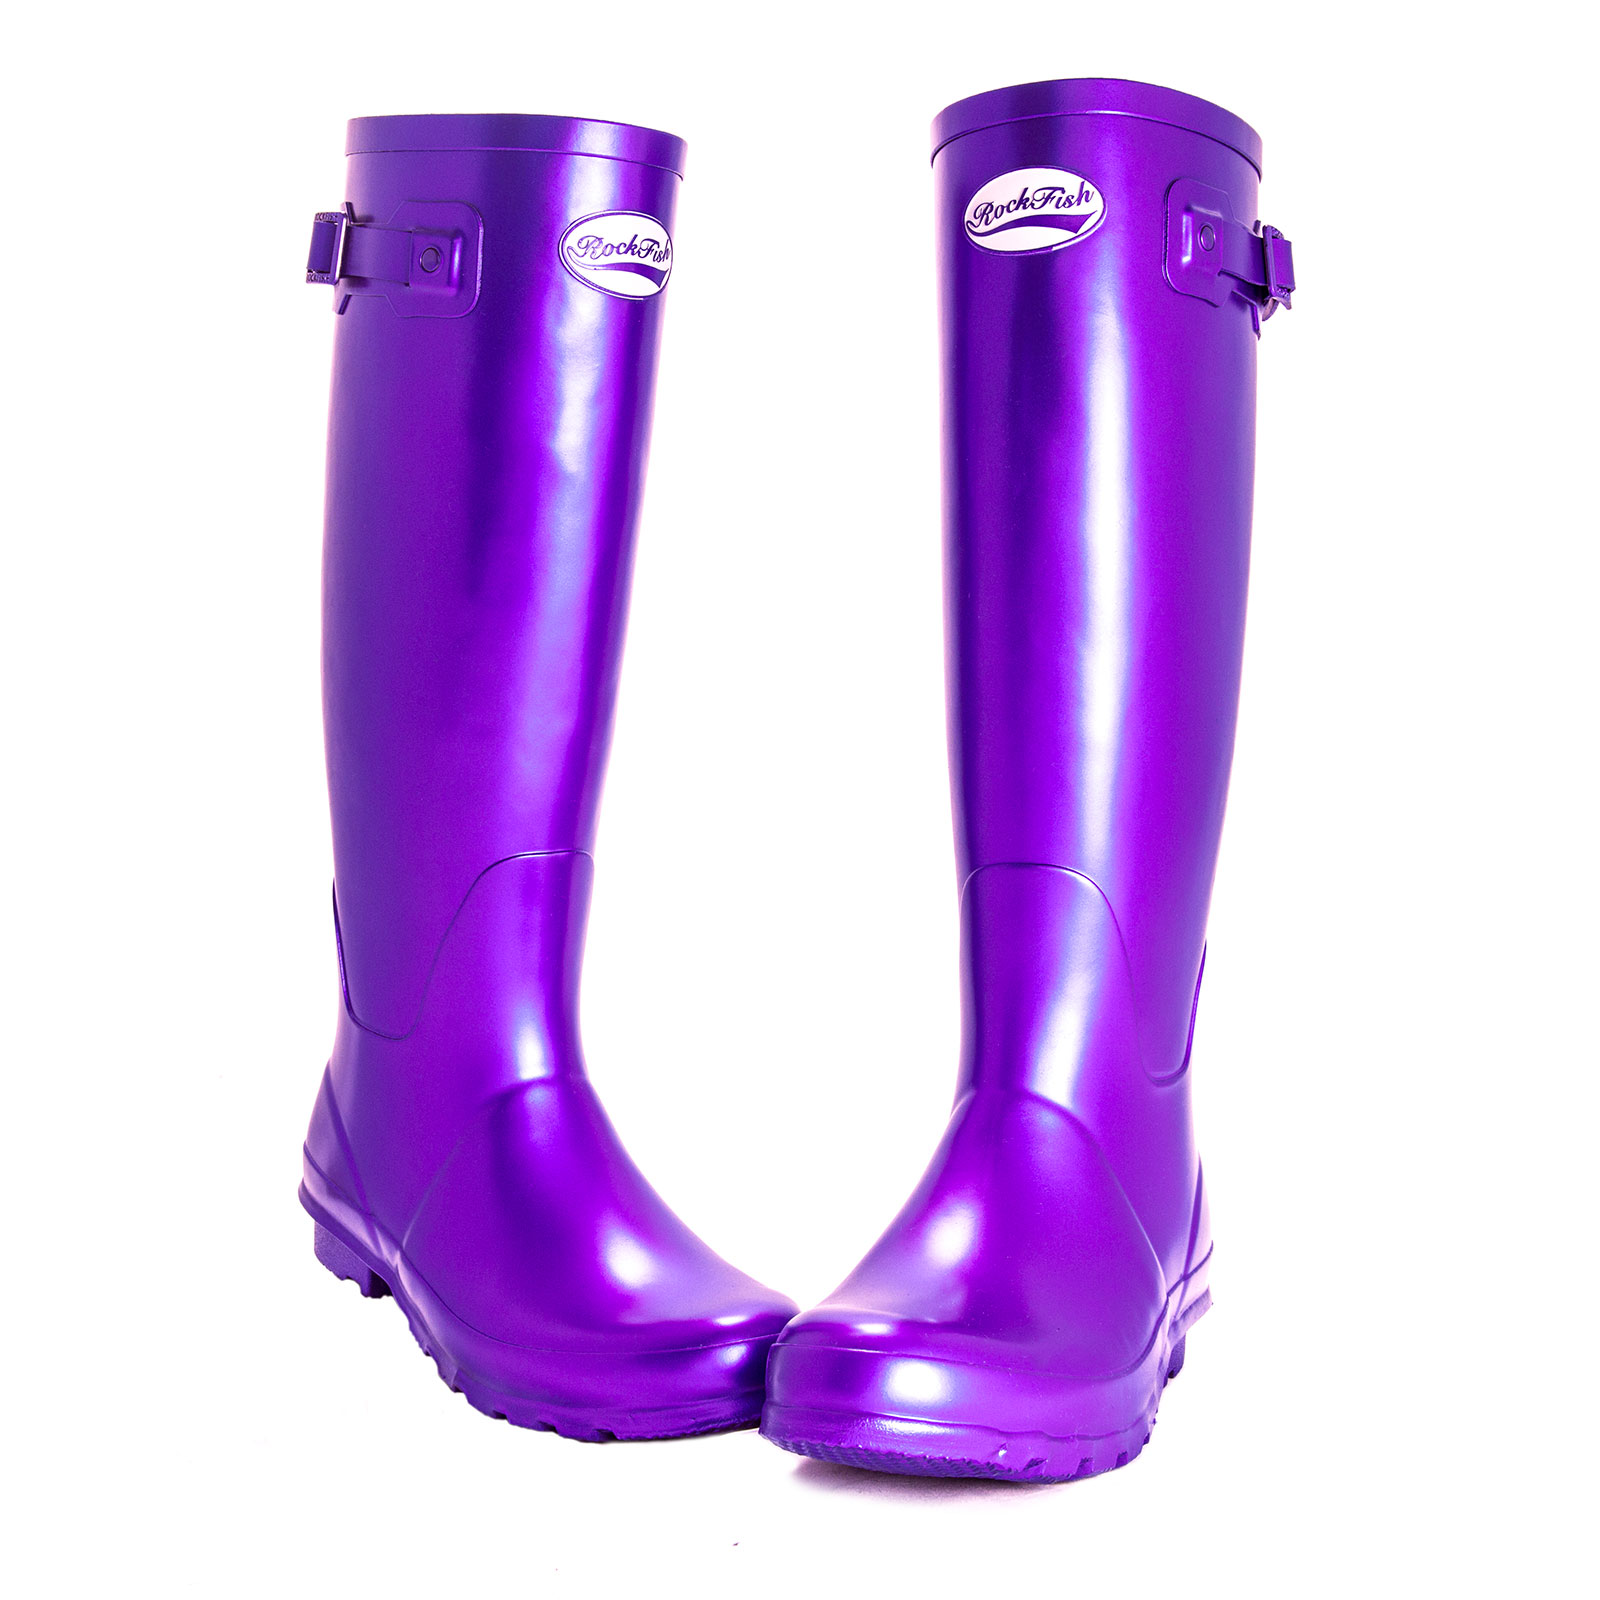 Rockfish Original Wellington Boots Metallic Tall